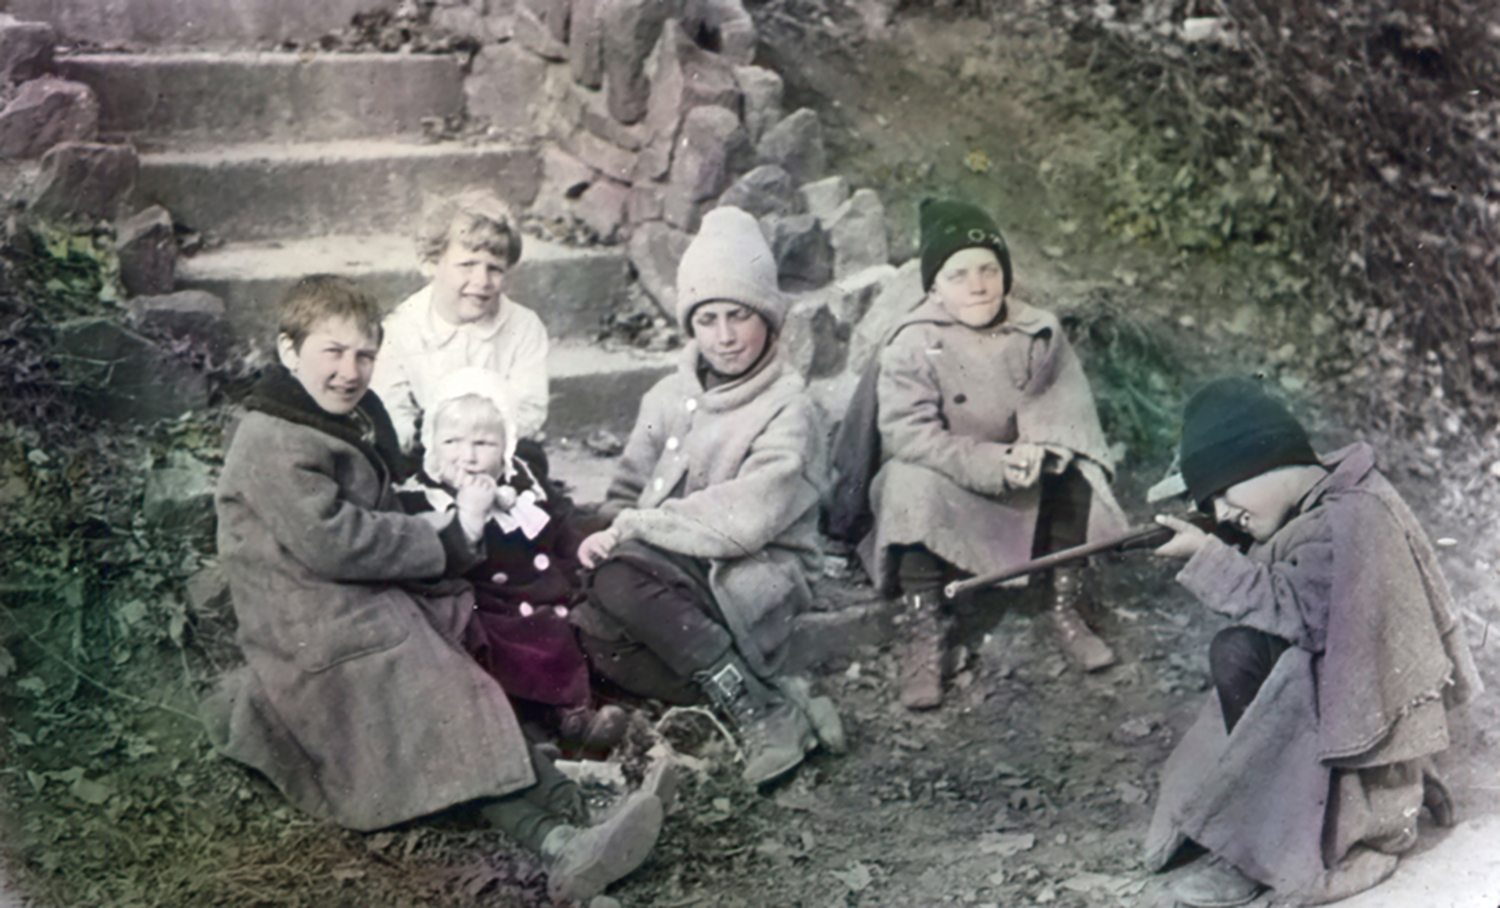 Figure 10: Children at play on South Avenue, 1915. From a collection of hand-colored lantern slides in the Academy of the New Church Archives showing scenes of early Bryn Athyn.